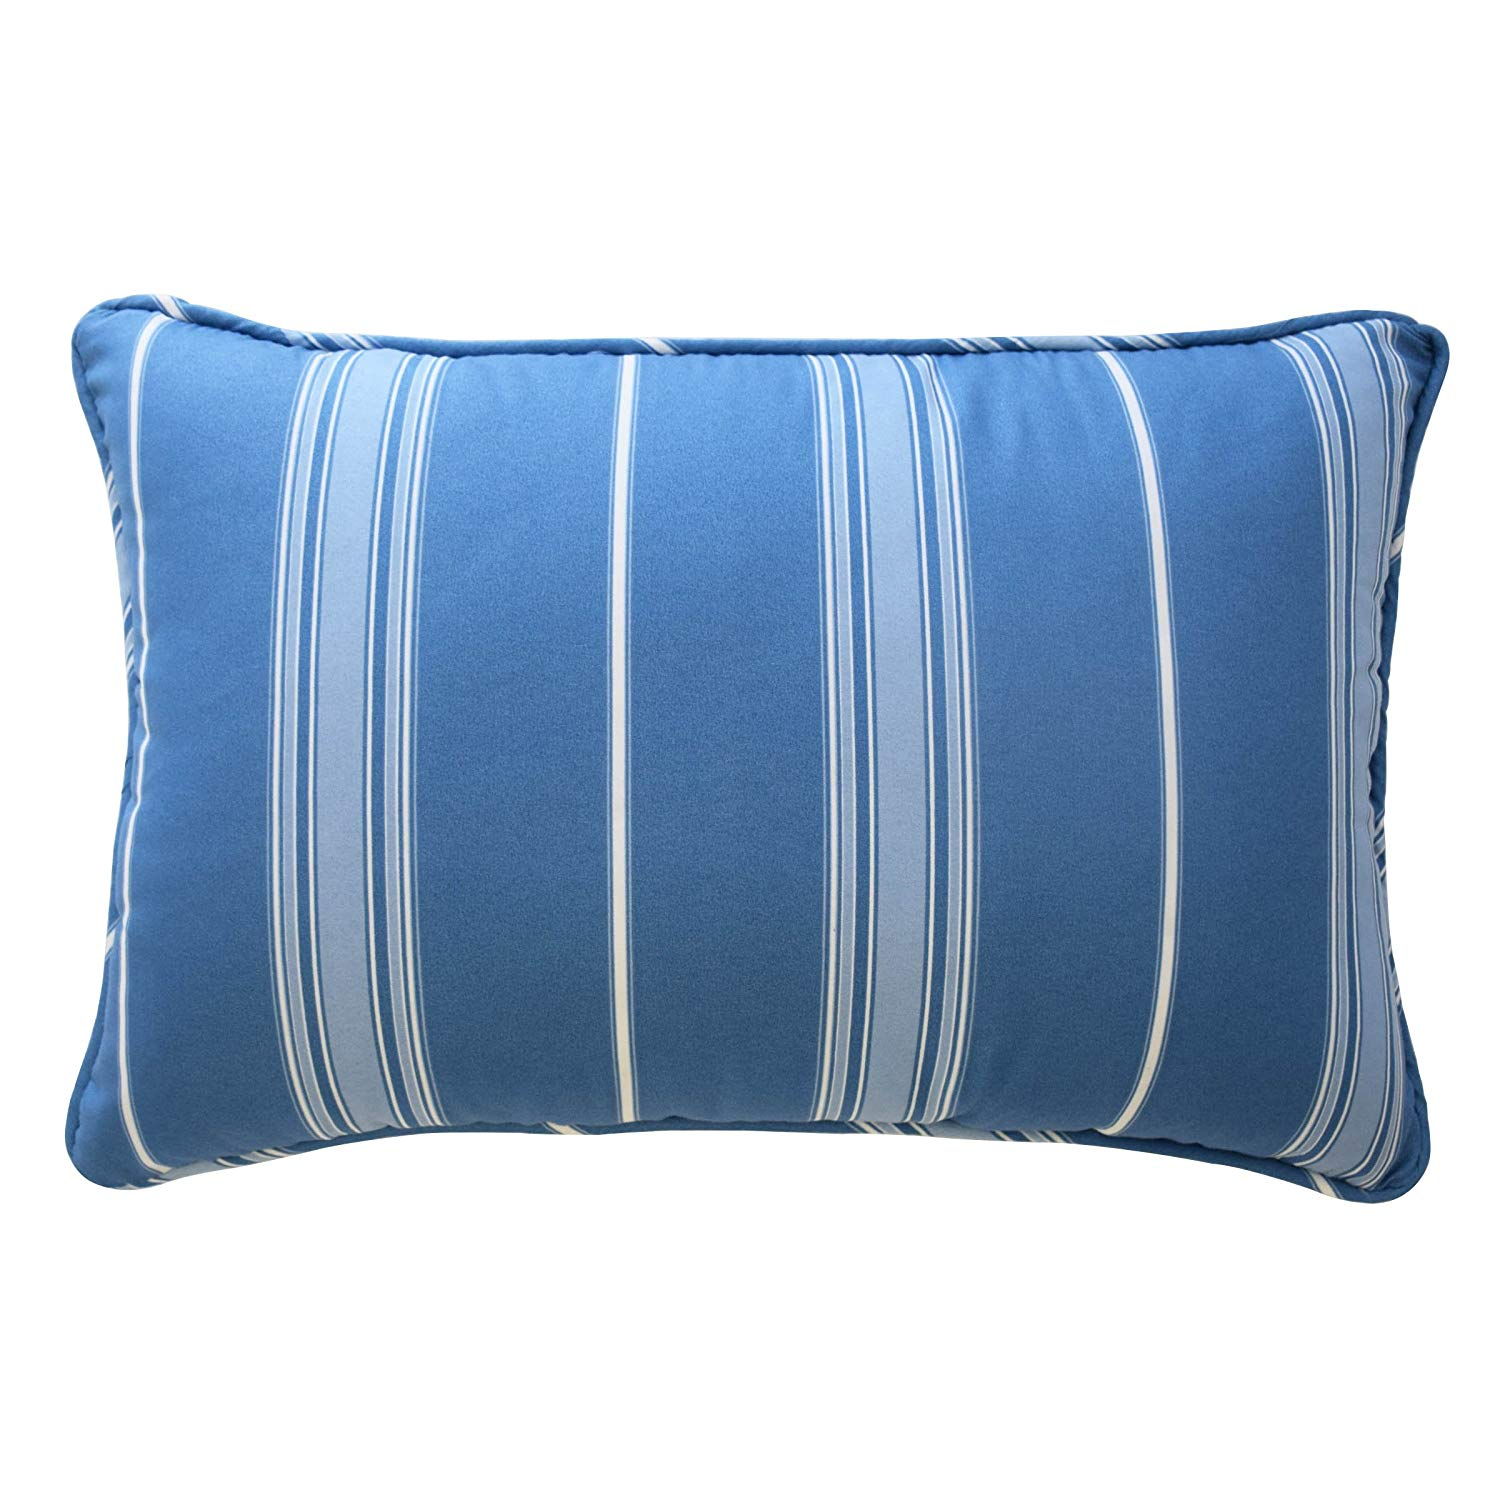 Kids 16448012X018AQU Ride The Wave 12-Inch by 18-Inch Striped Decorative Accessory Pillow, Aqua, 100% Polyester By WAVERLY